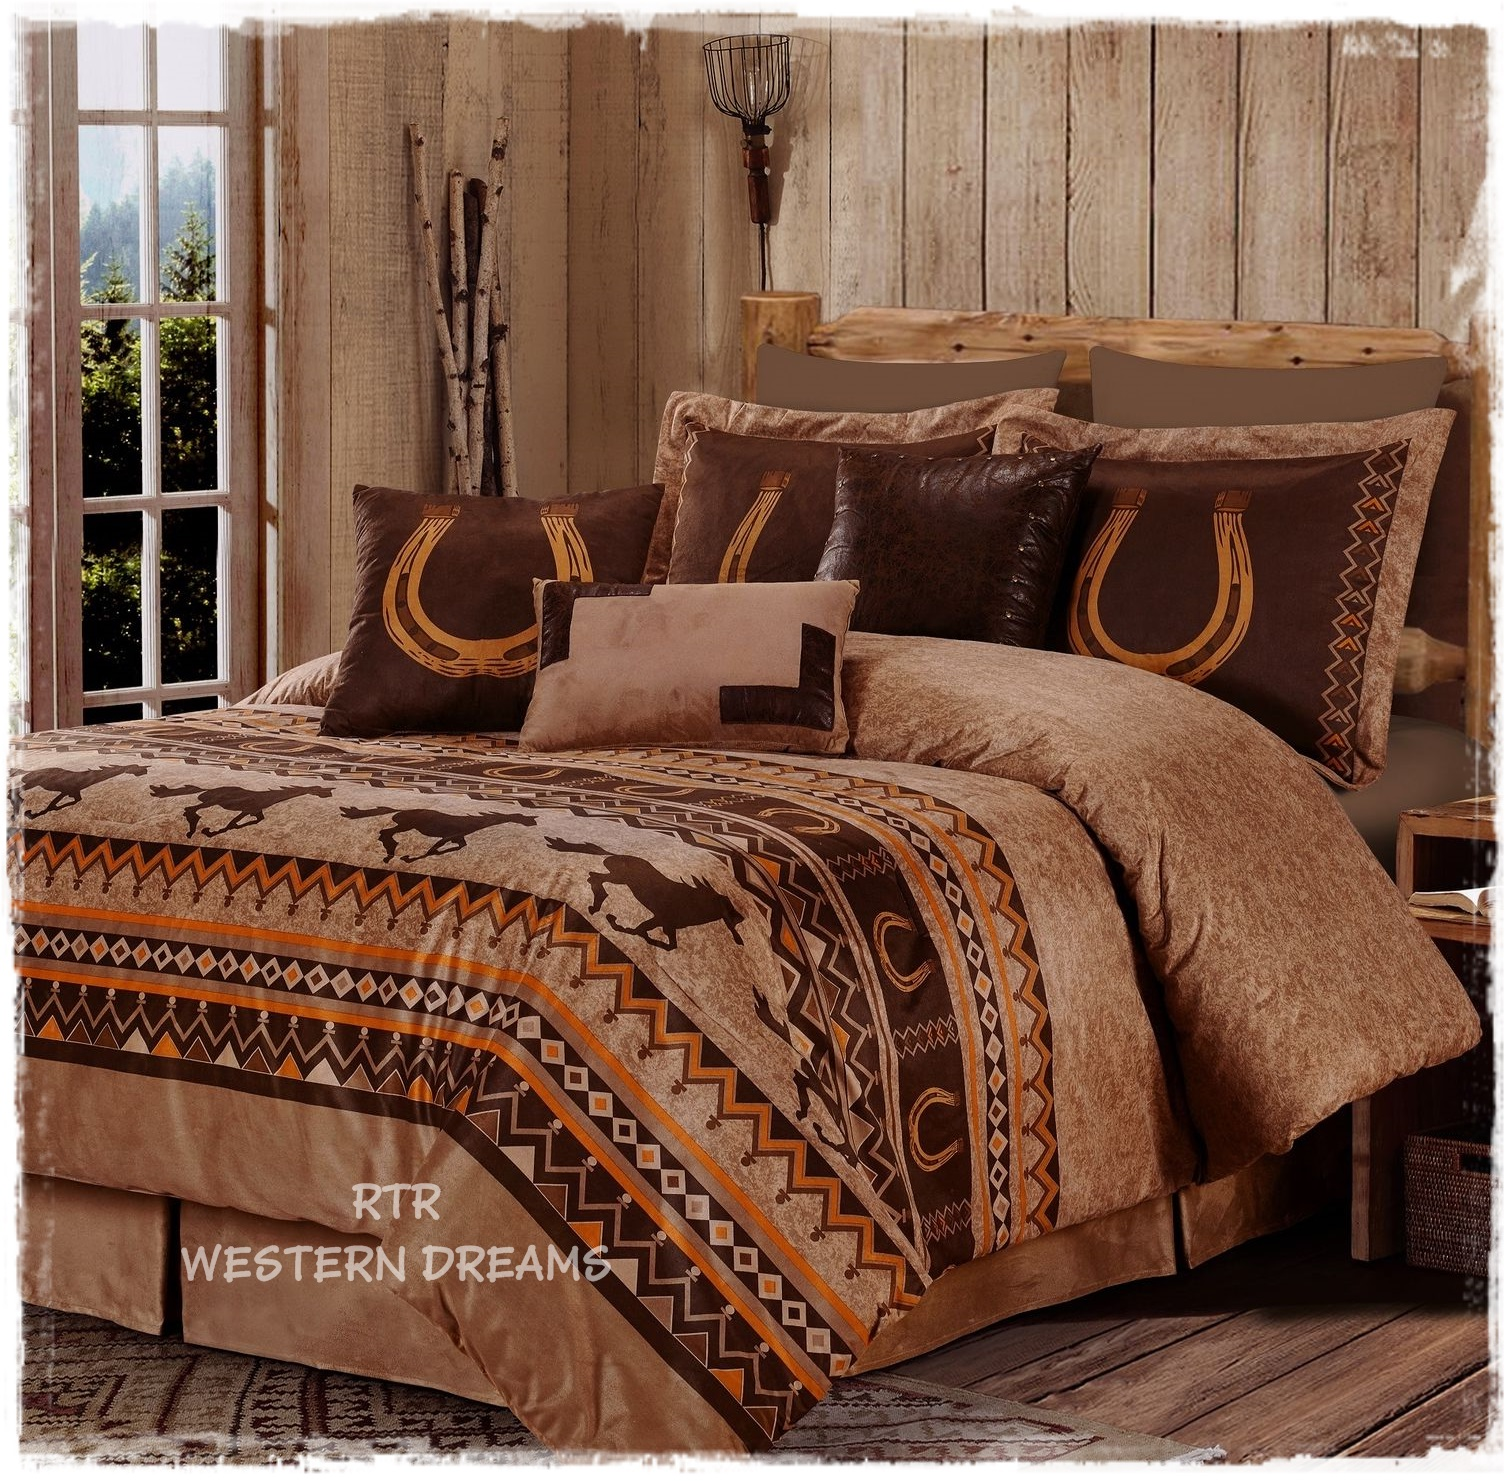 rustic ideas cheap ruffle brown painted king bed bedroom primitive set wrap with headboard walls black around white quilt california wooden red bedding cal country skirt